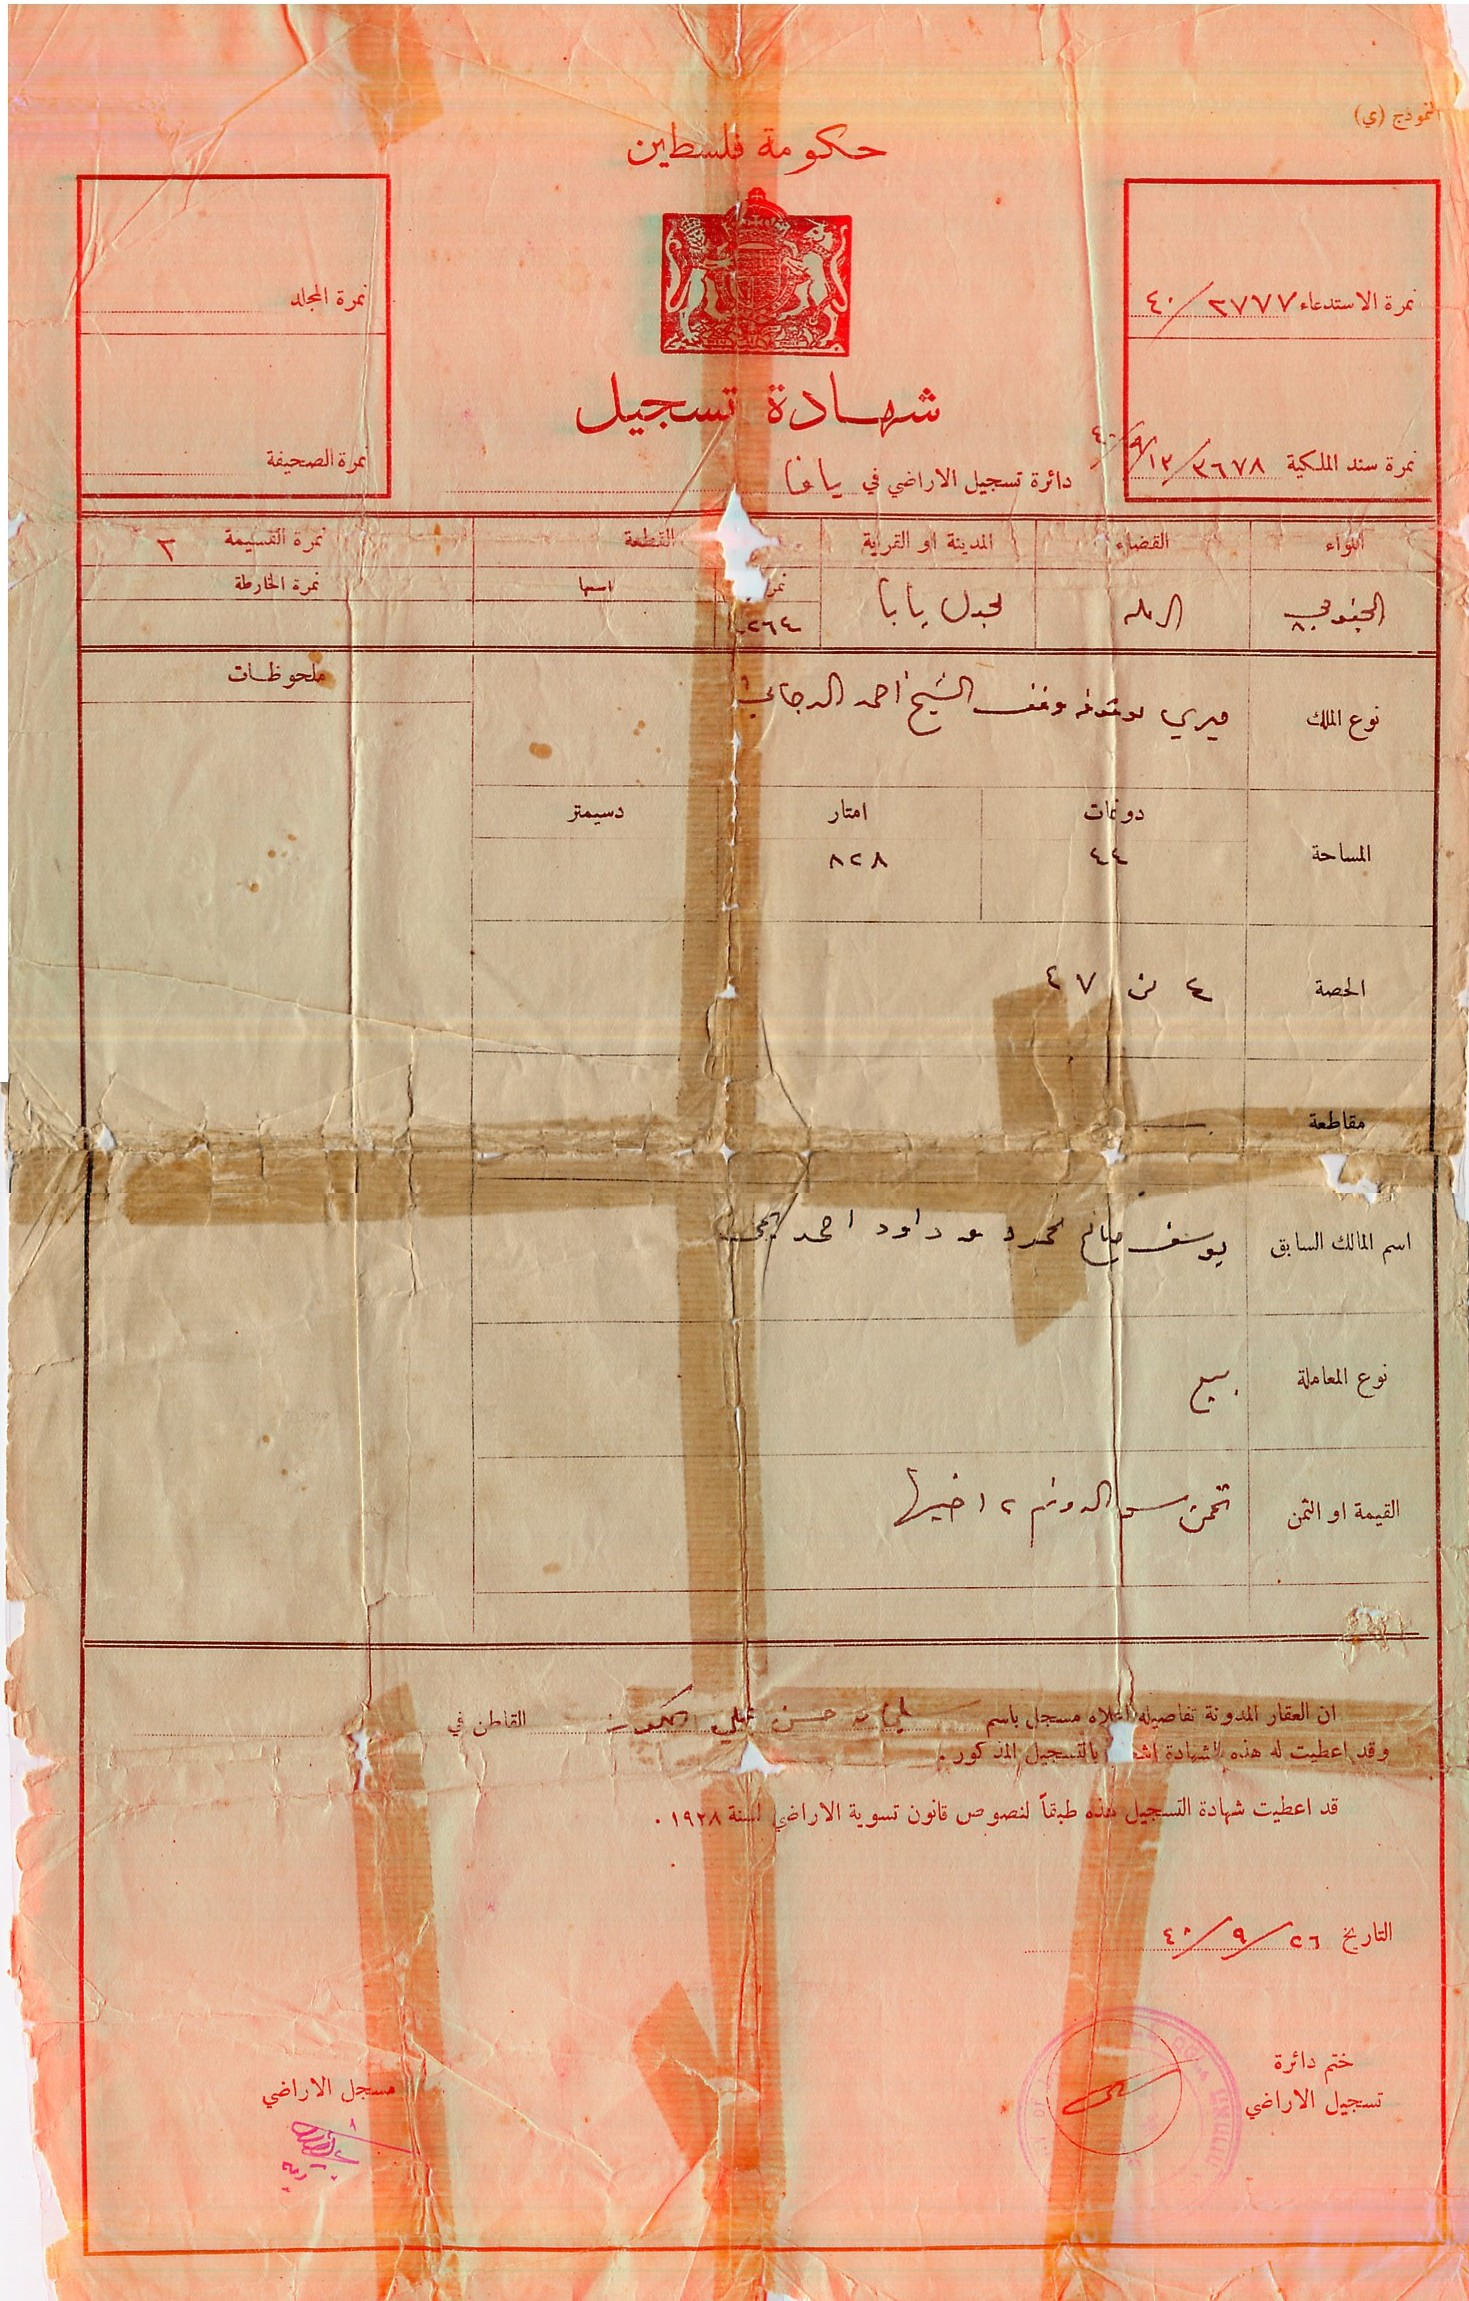 Majdal Yaba - مجدل يابا/الصادق : Land Title from Majdal Yaba dated 1940 كوشان ارض من مجدل يابا